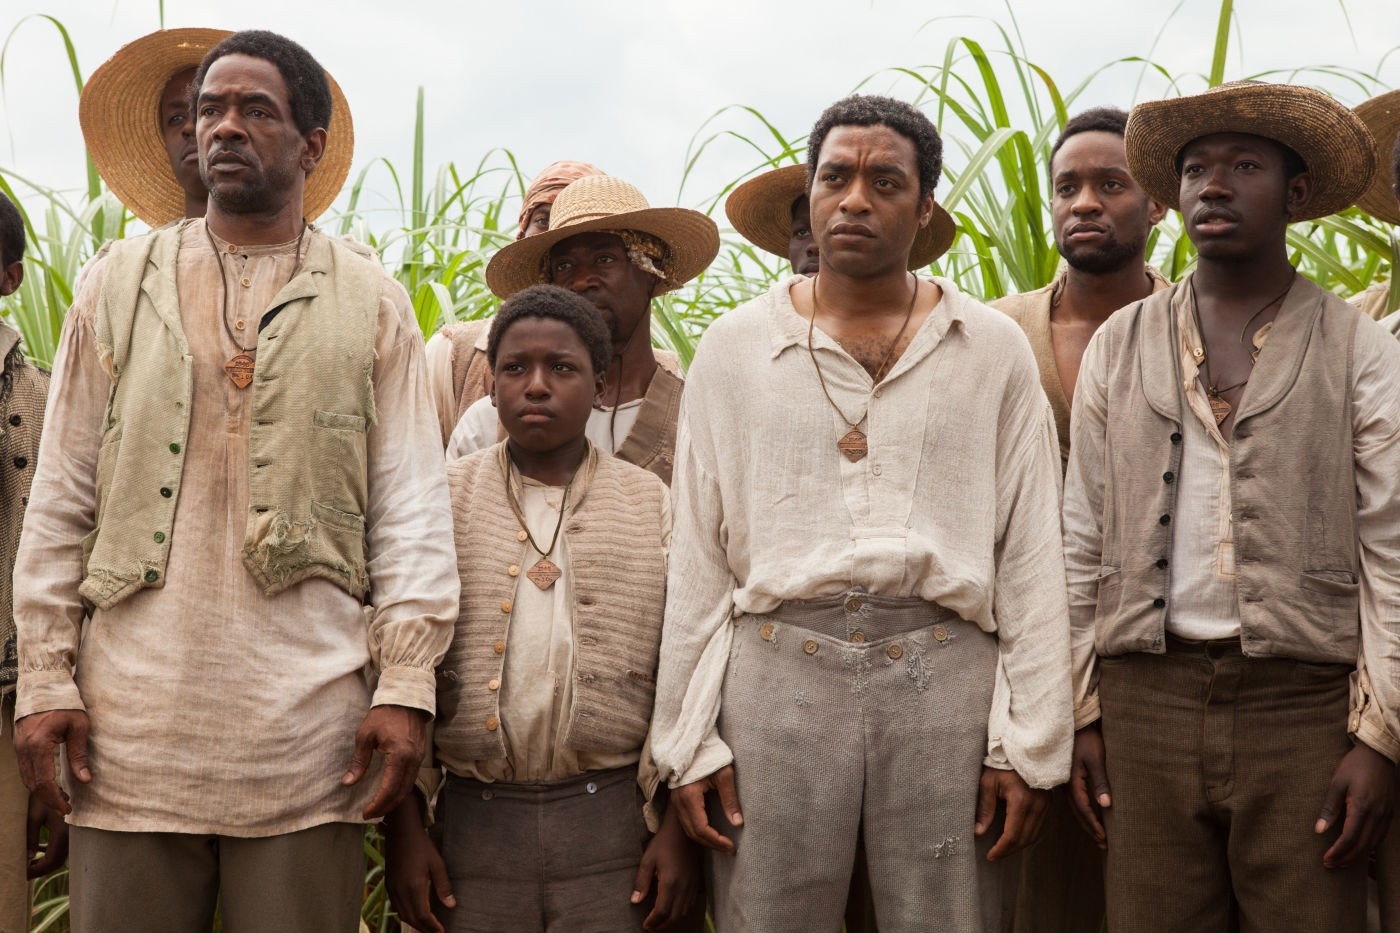 12 Years A Slave Backgrounds on Wallpapers Vista